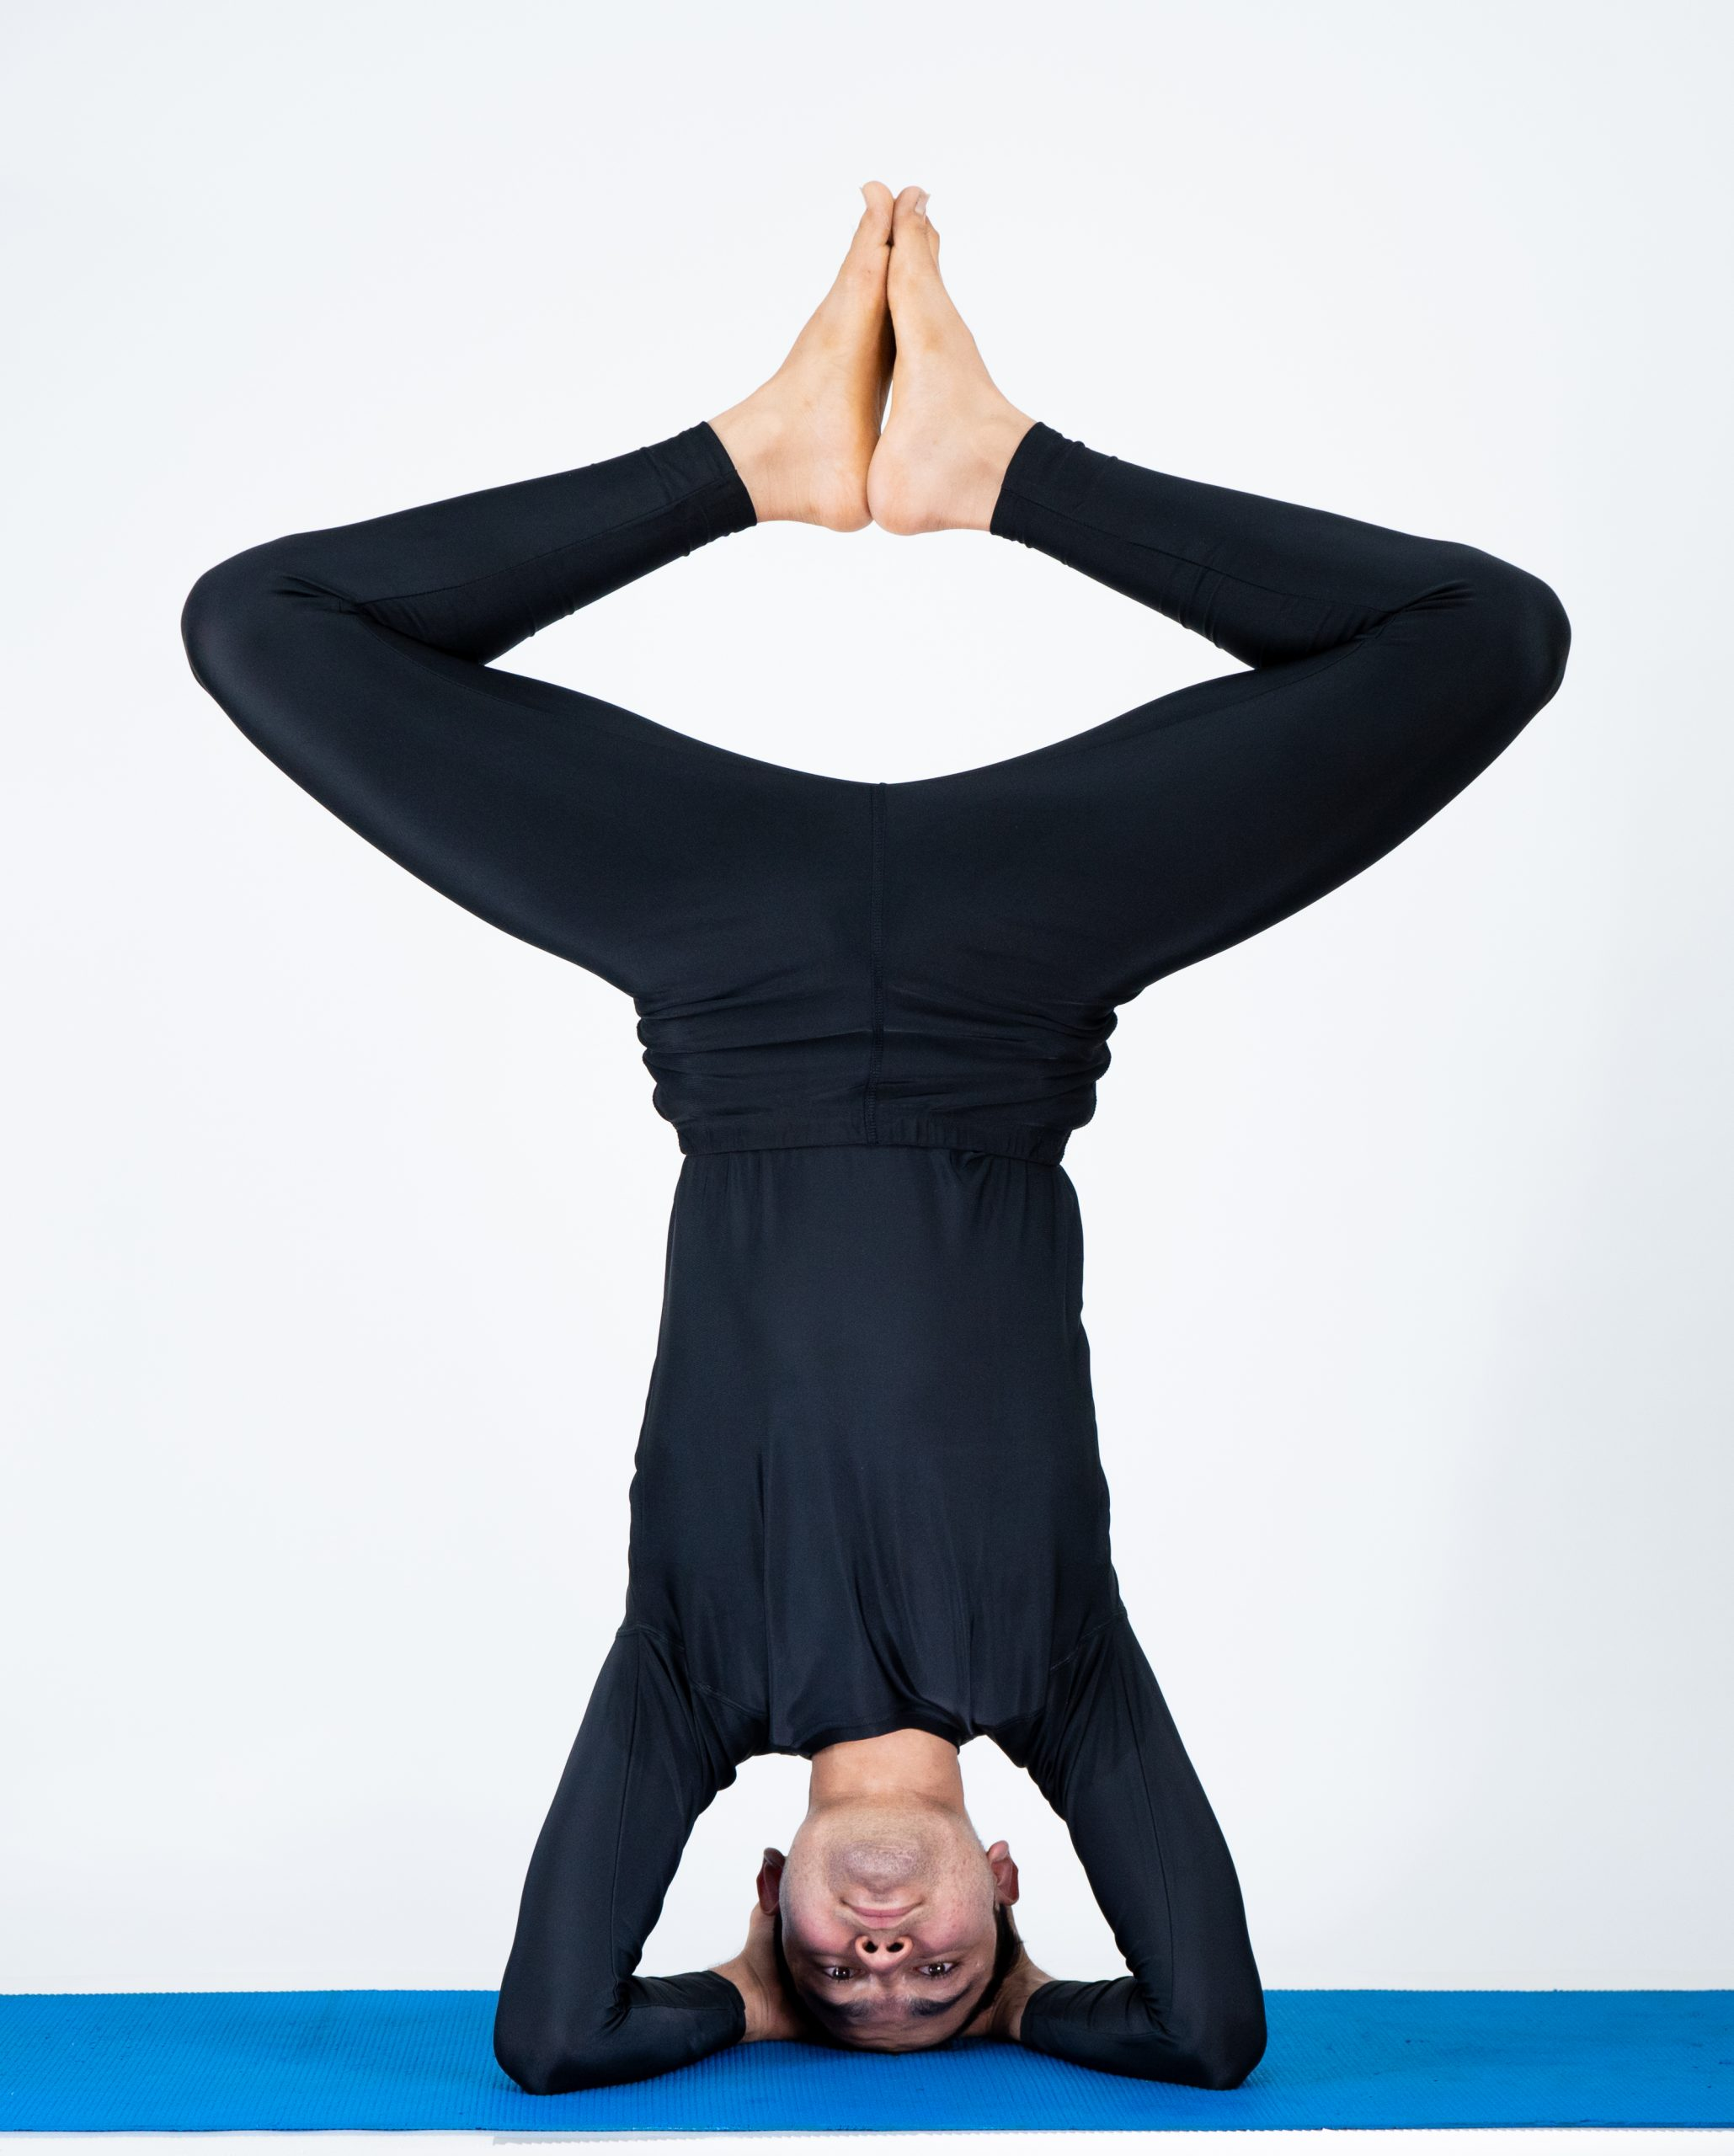 Boy doing Headstand